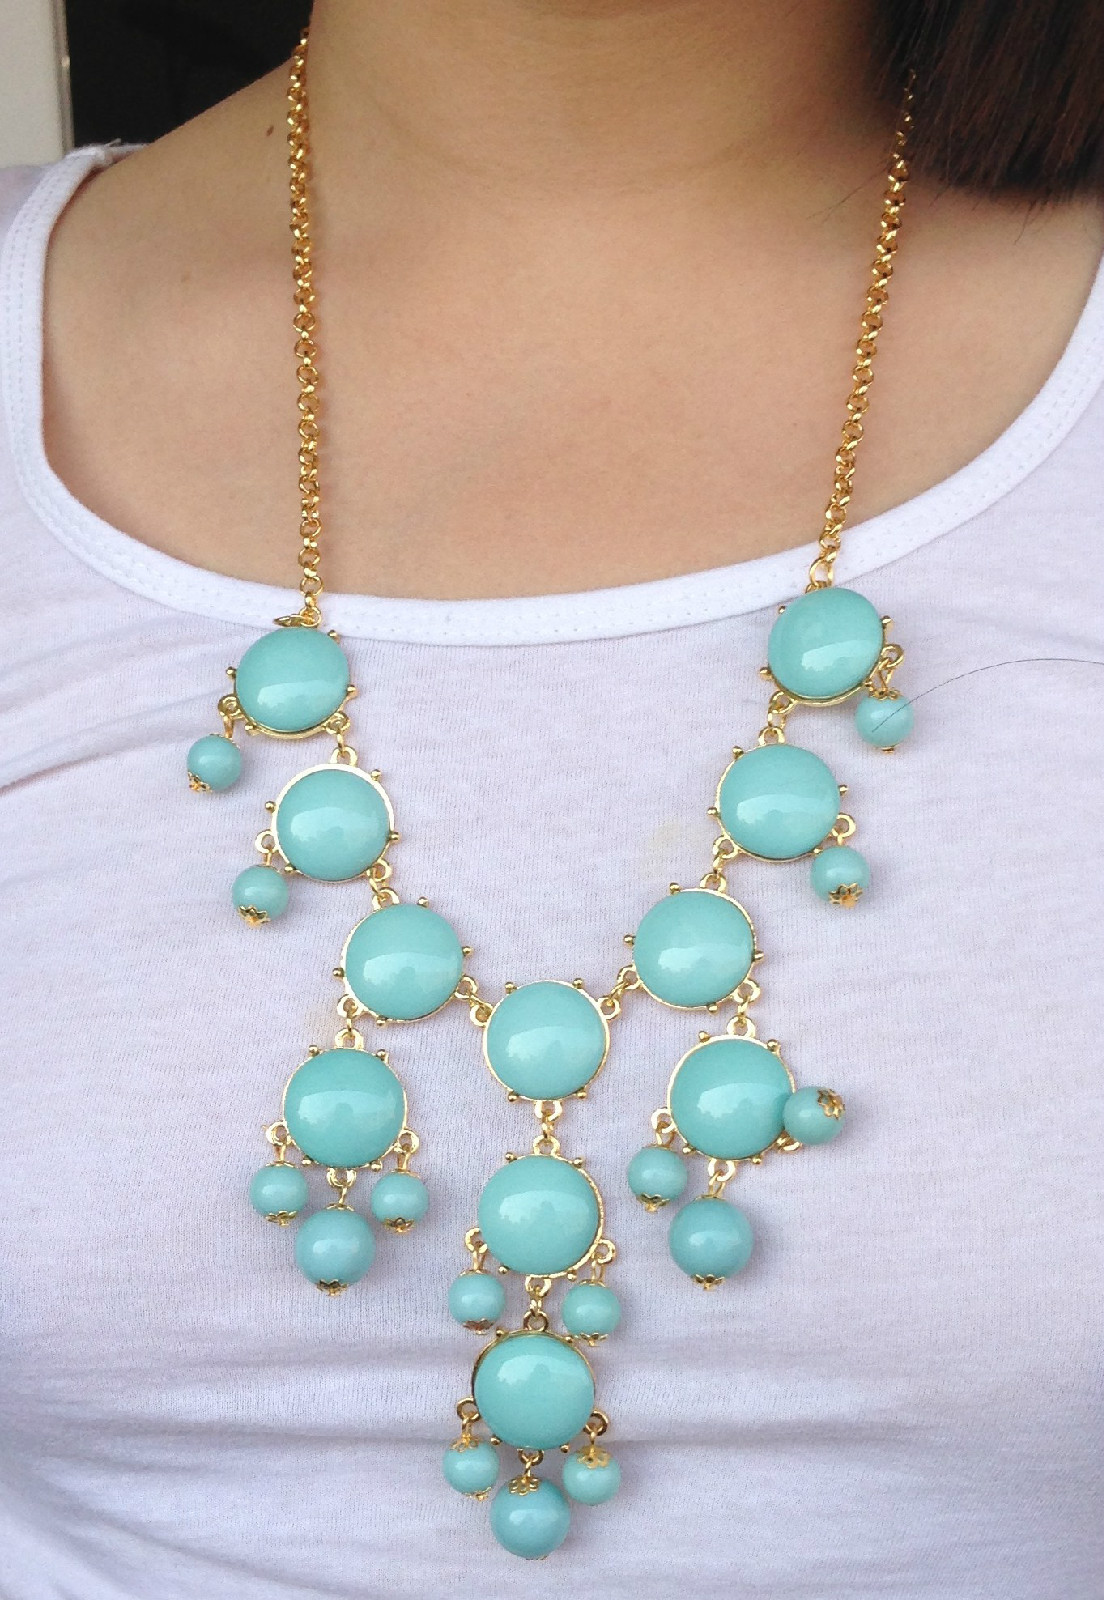 motion collar fashion necklaces the spring trend necklace in encircling